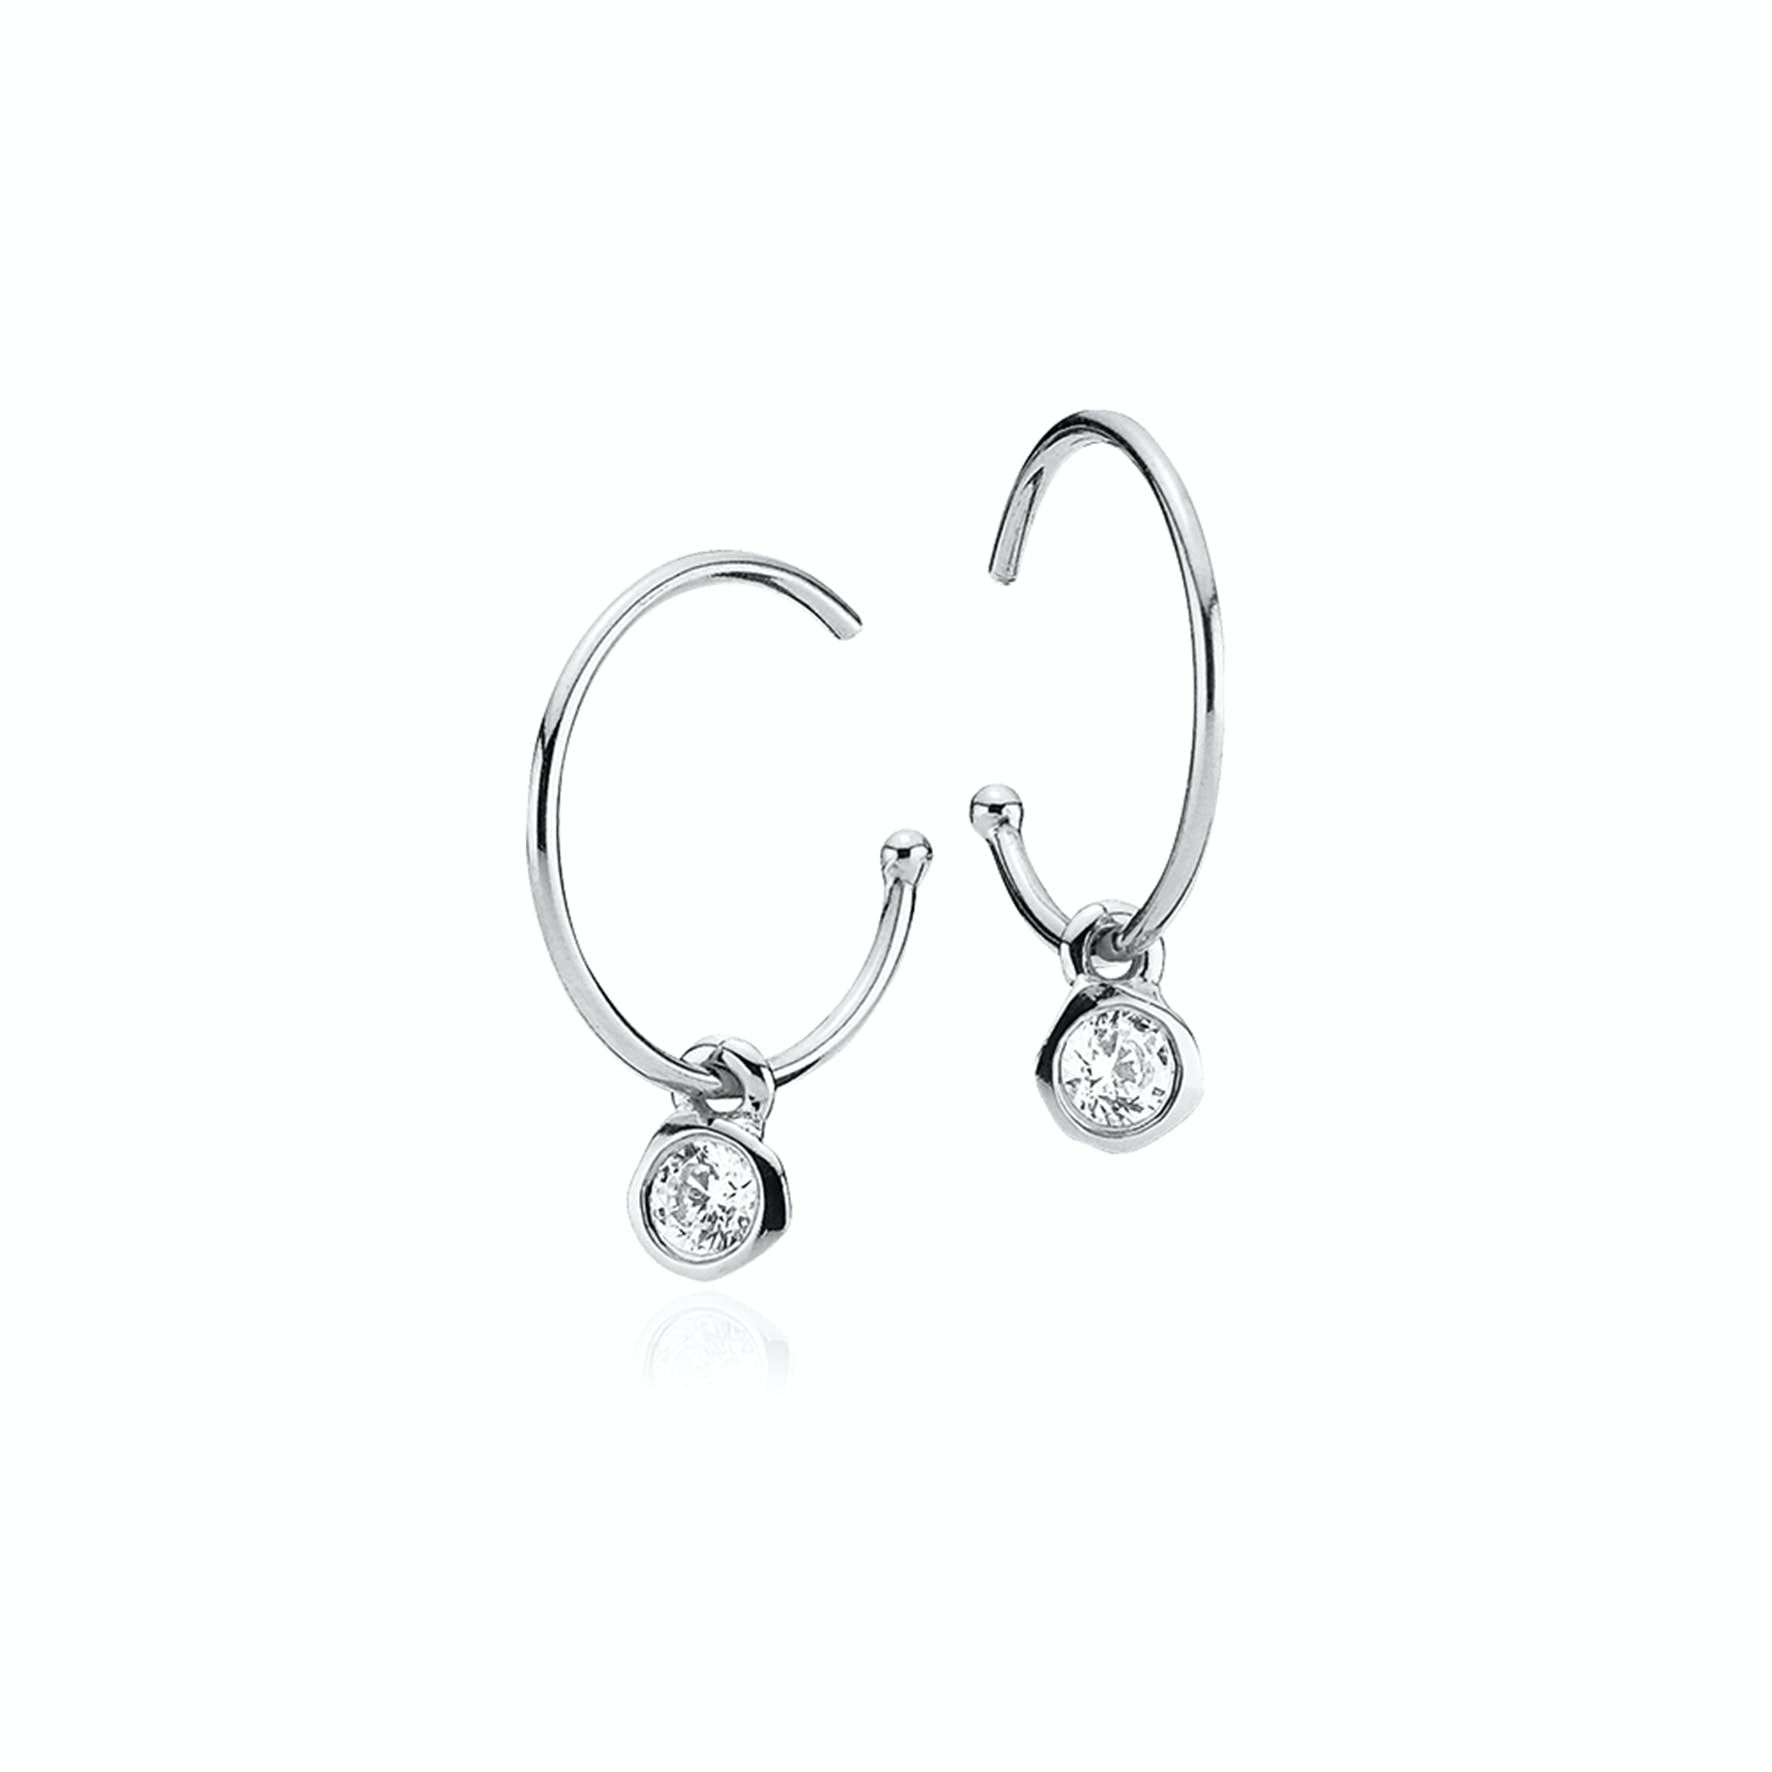 Passion Clear Crystal Earrings from Izabel Camille in Silver Sterling 925